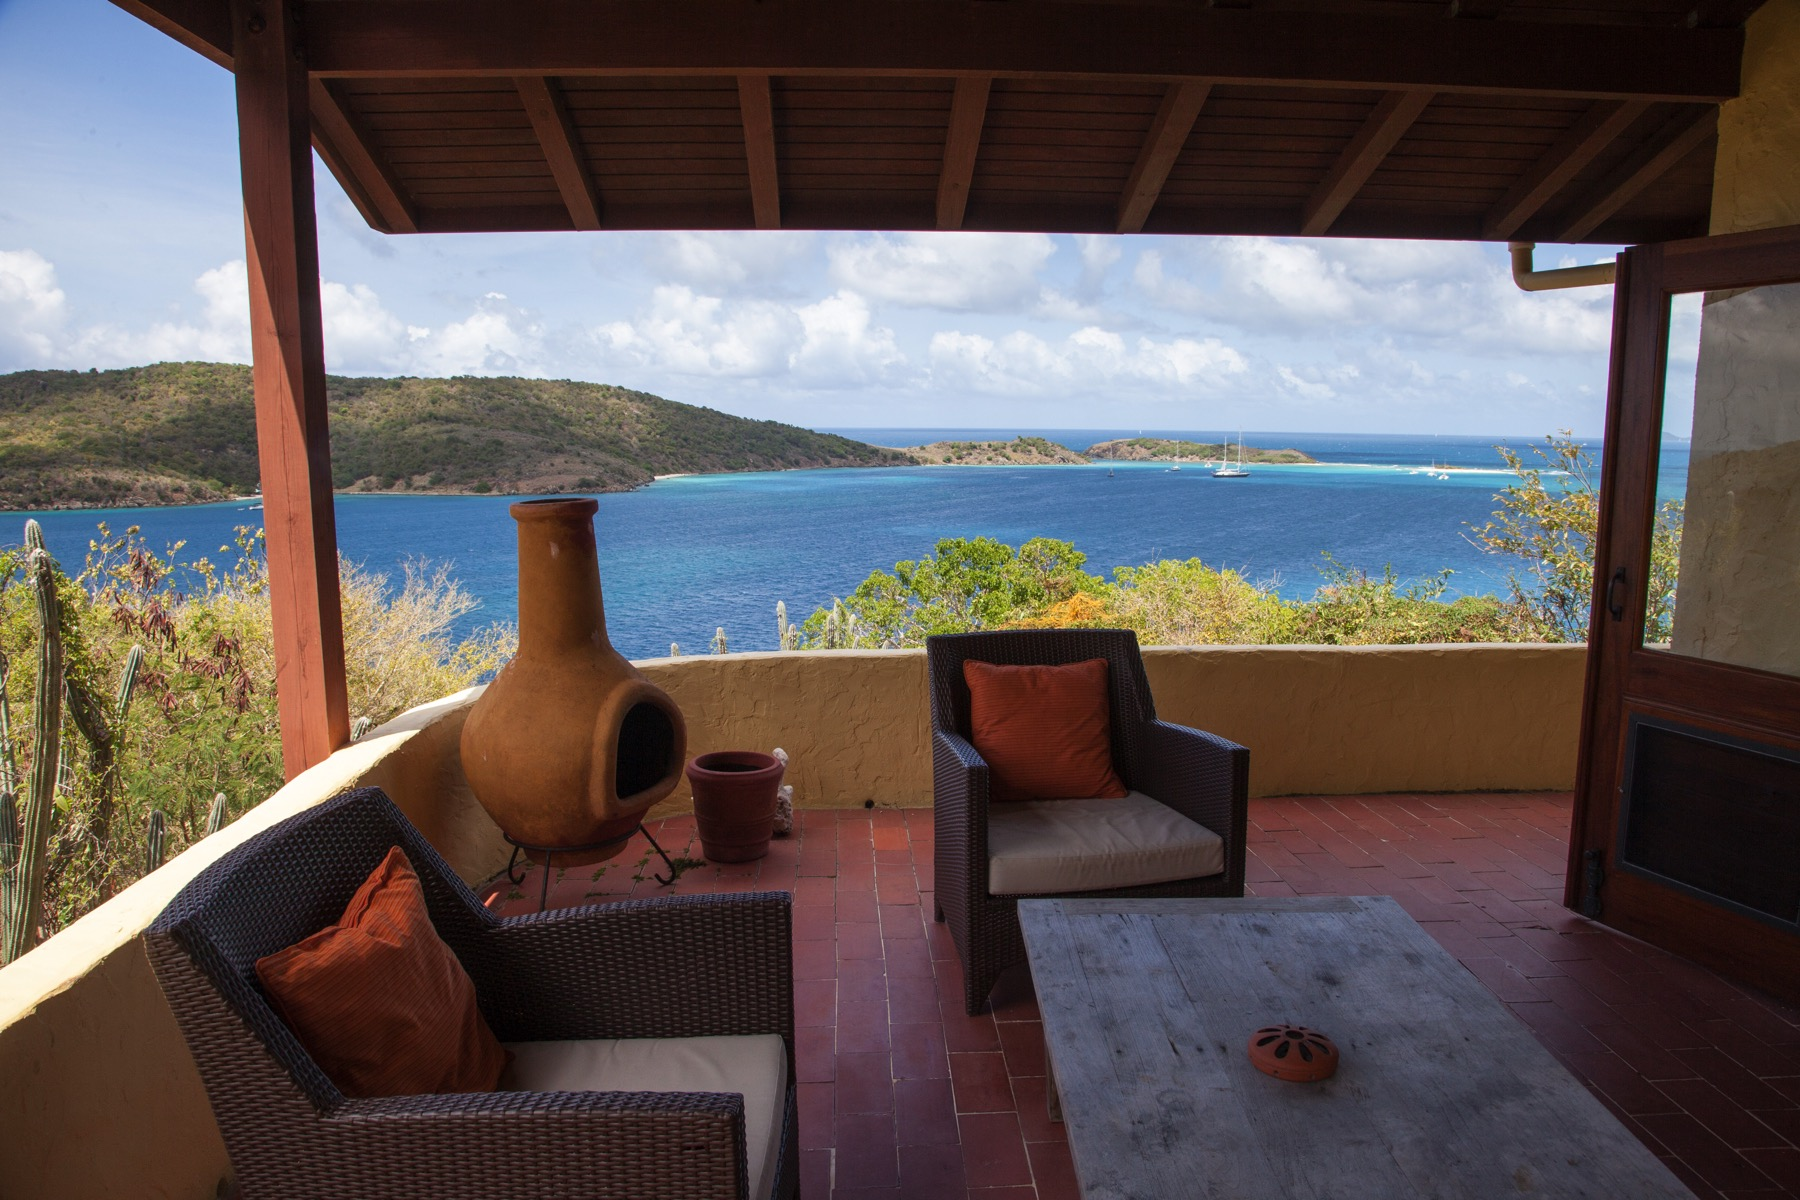 Villa per Vendita alle ore Diamond View Sandy Ground, Jost Van Dyke Isole Vergini Britanniche